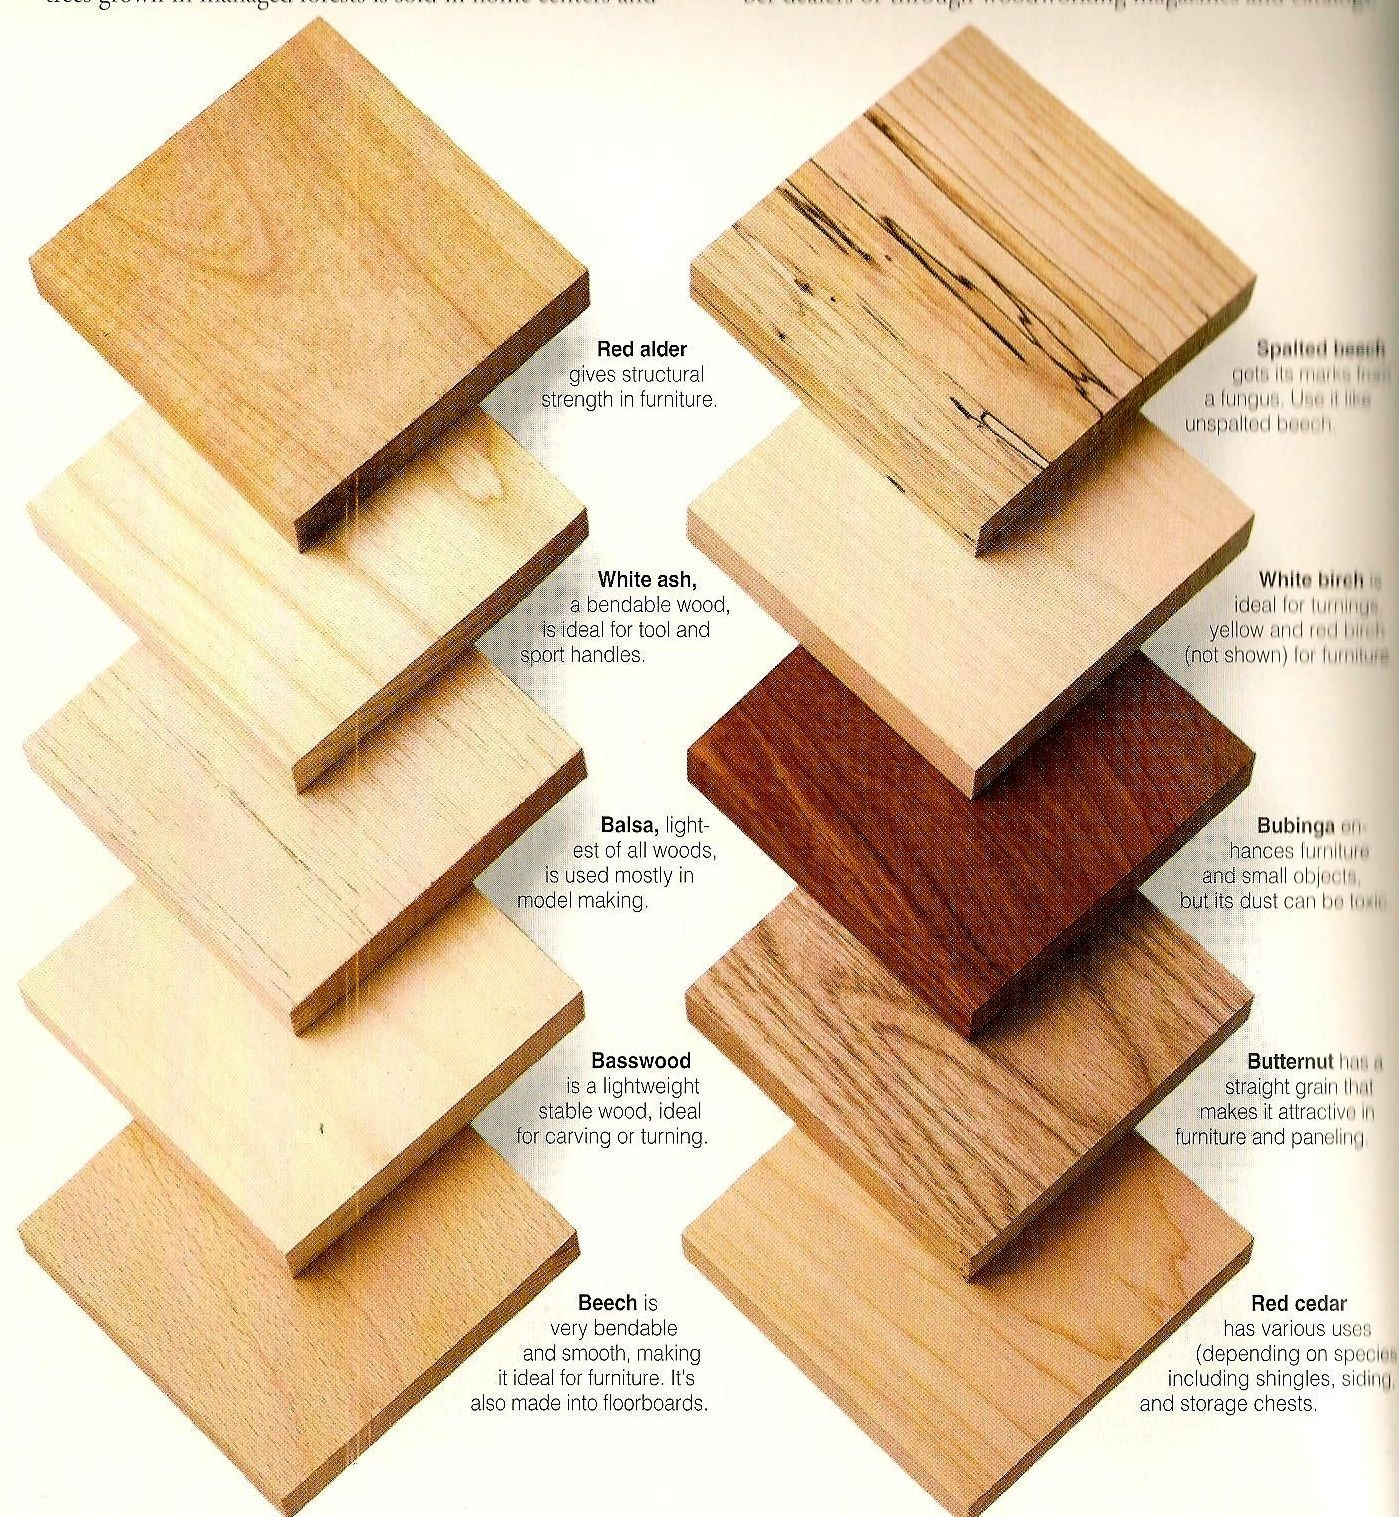 Wood Types Samples For Client Reference Wood Projects For Beginners Wood Working For Beginners Learn Woodworking